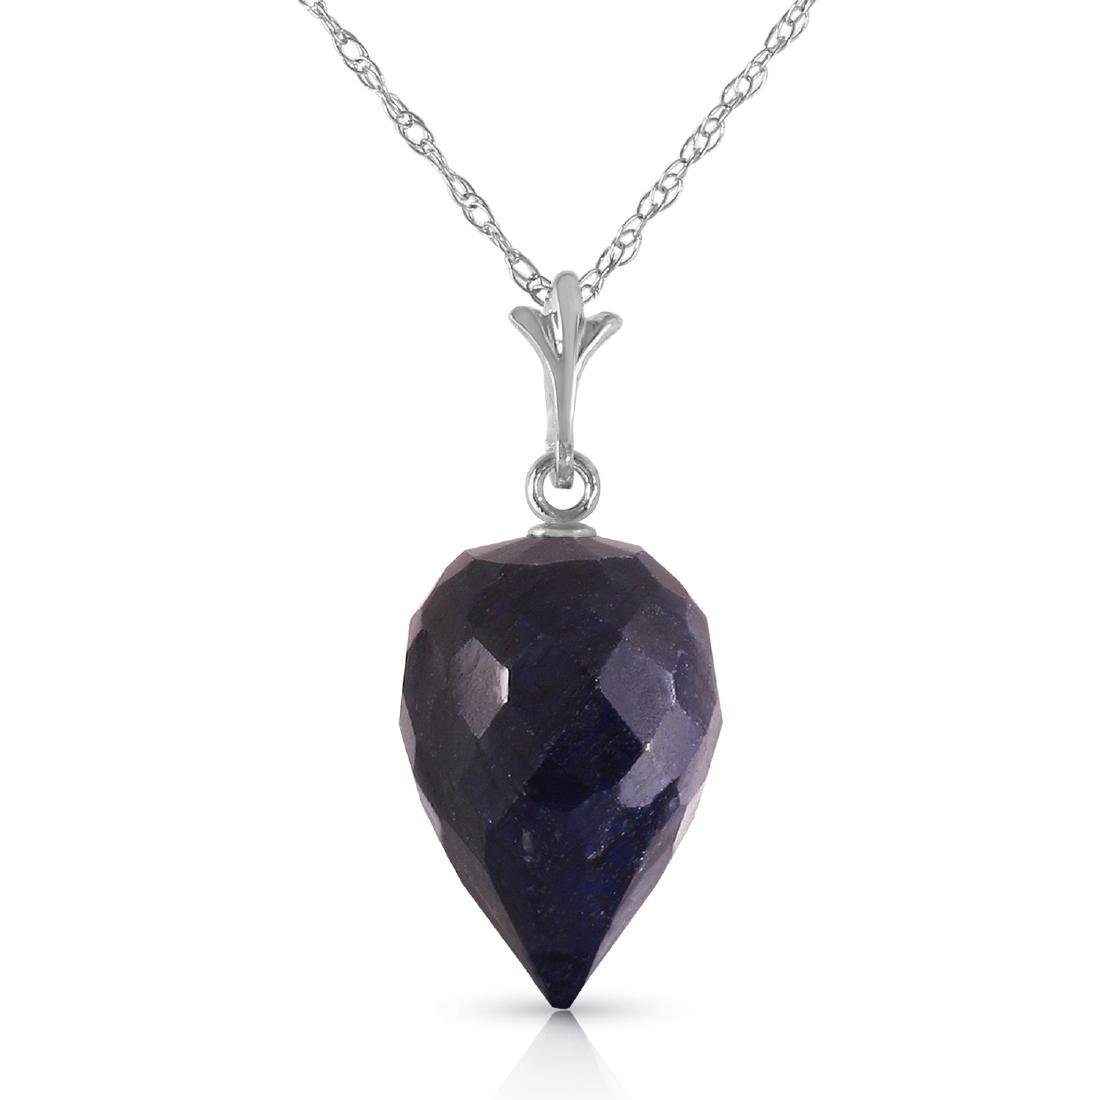 Genuine 12.9 ctw Sapphire Necklace Jewelry 14KT White